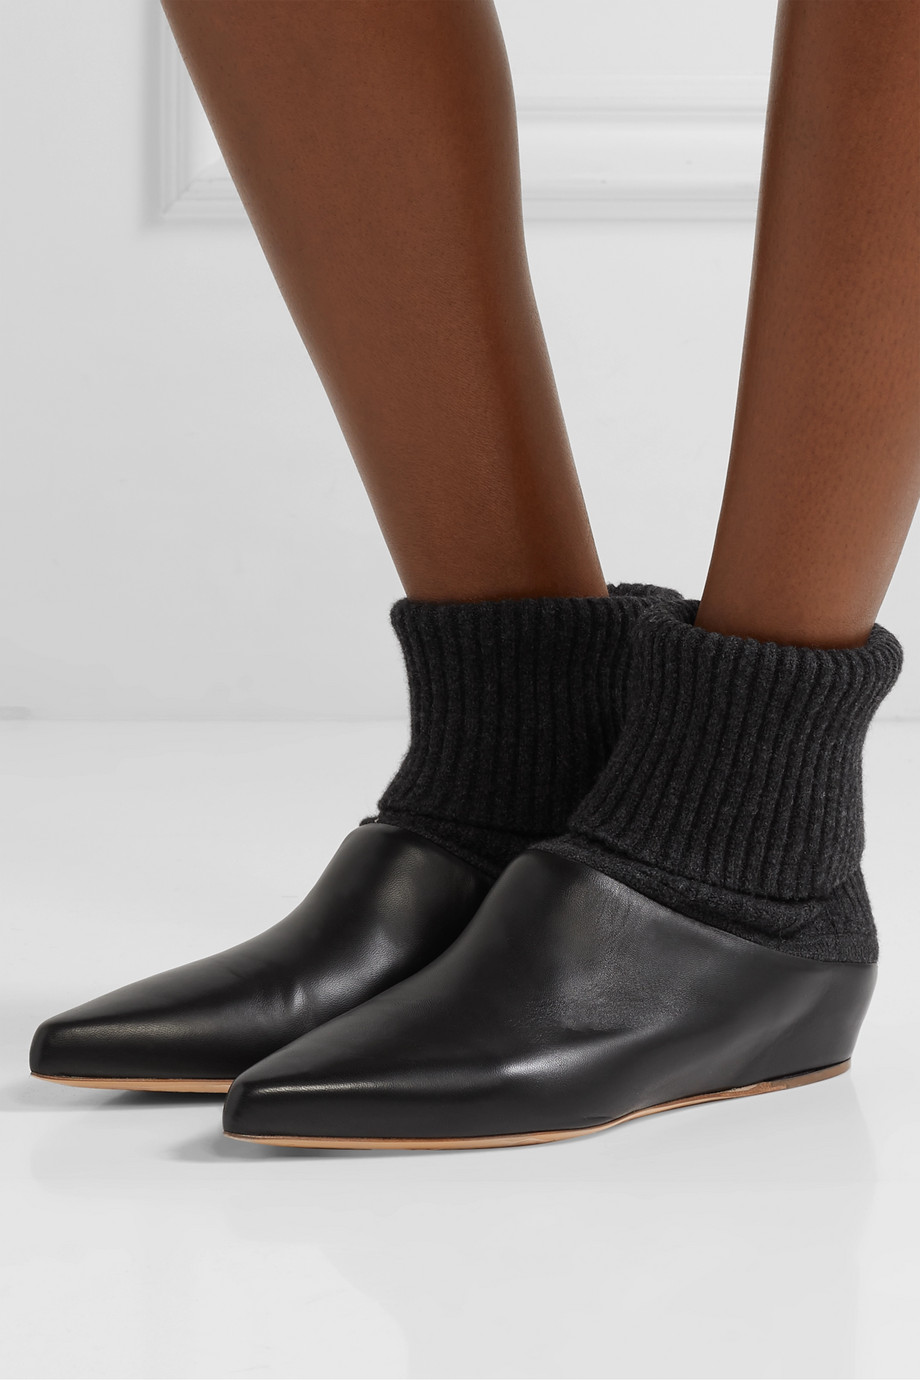 Gabriela Hearst Rocia leather and cashmere sock boots